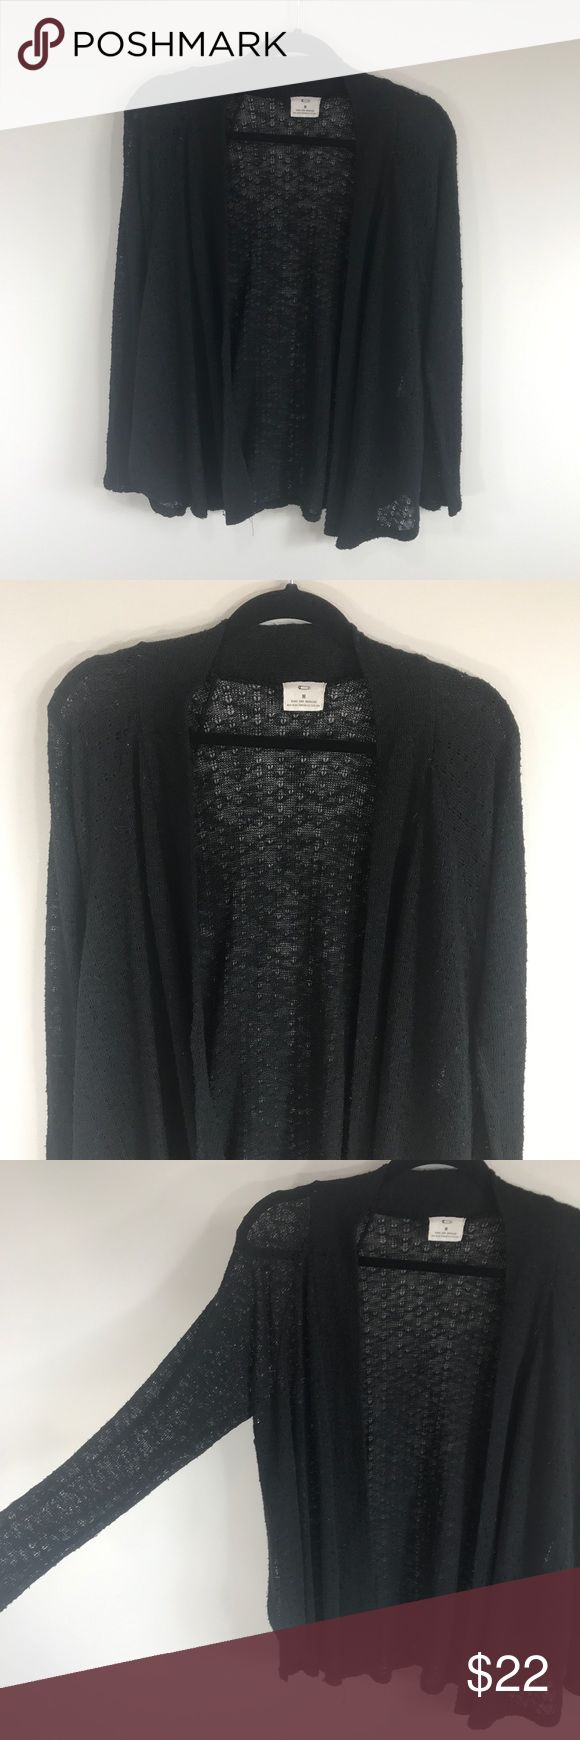 """Pins and Needles Black Gauze Knit Cardigan In excellent used condition. Very thin gauze knit. Distressed style with tiny holes throughout. Size M, true to size. Please refer to measurements to ensure a proper fit! Pit to pit: 19"""" Length: 26"""" Urban Outfitters Sweaters Cardigans"""